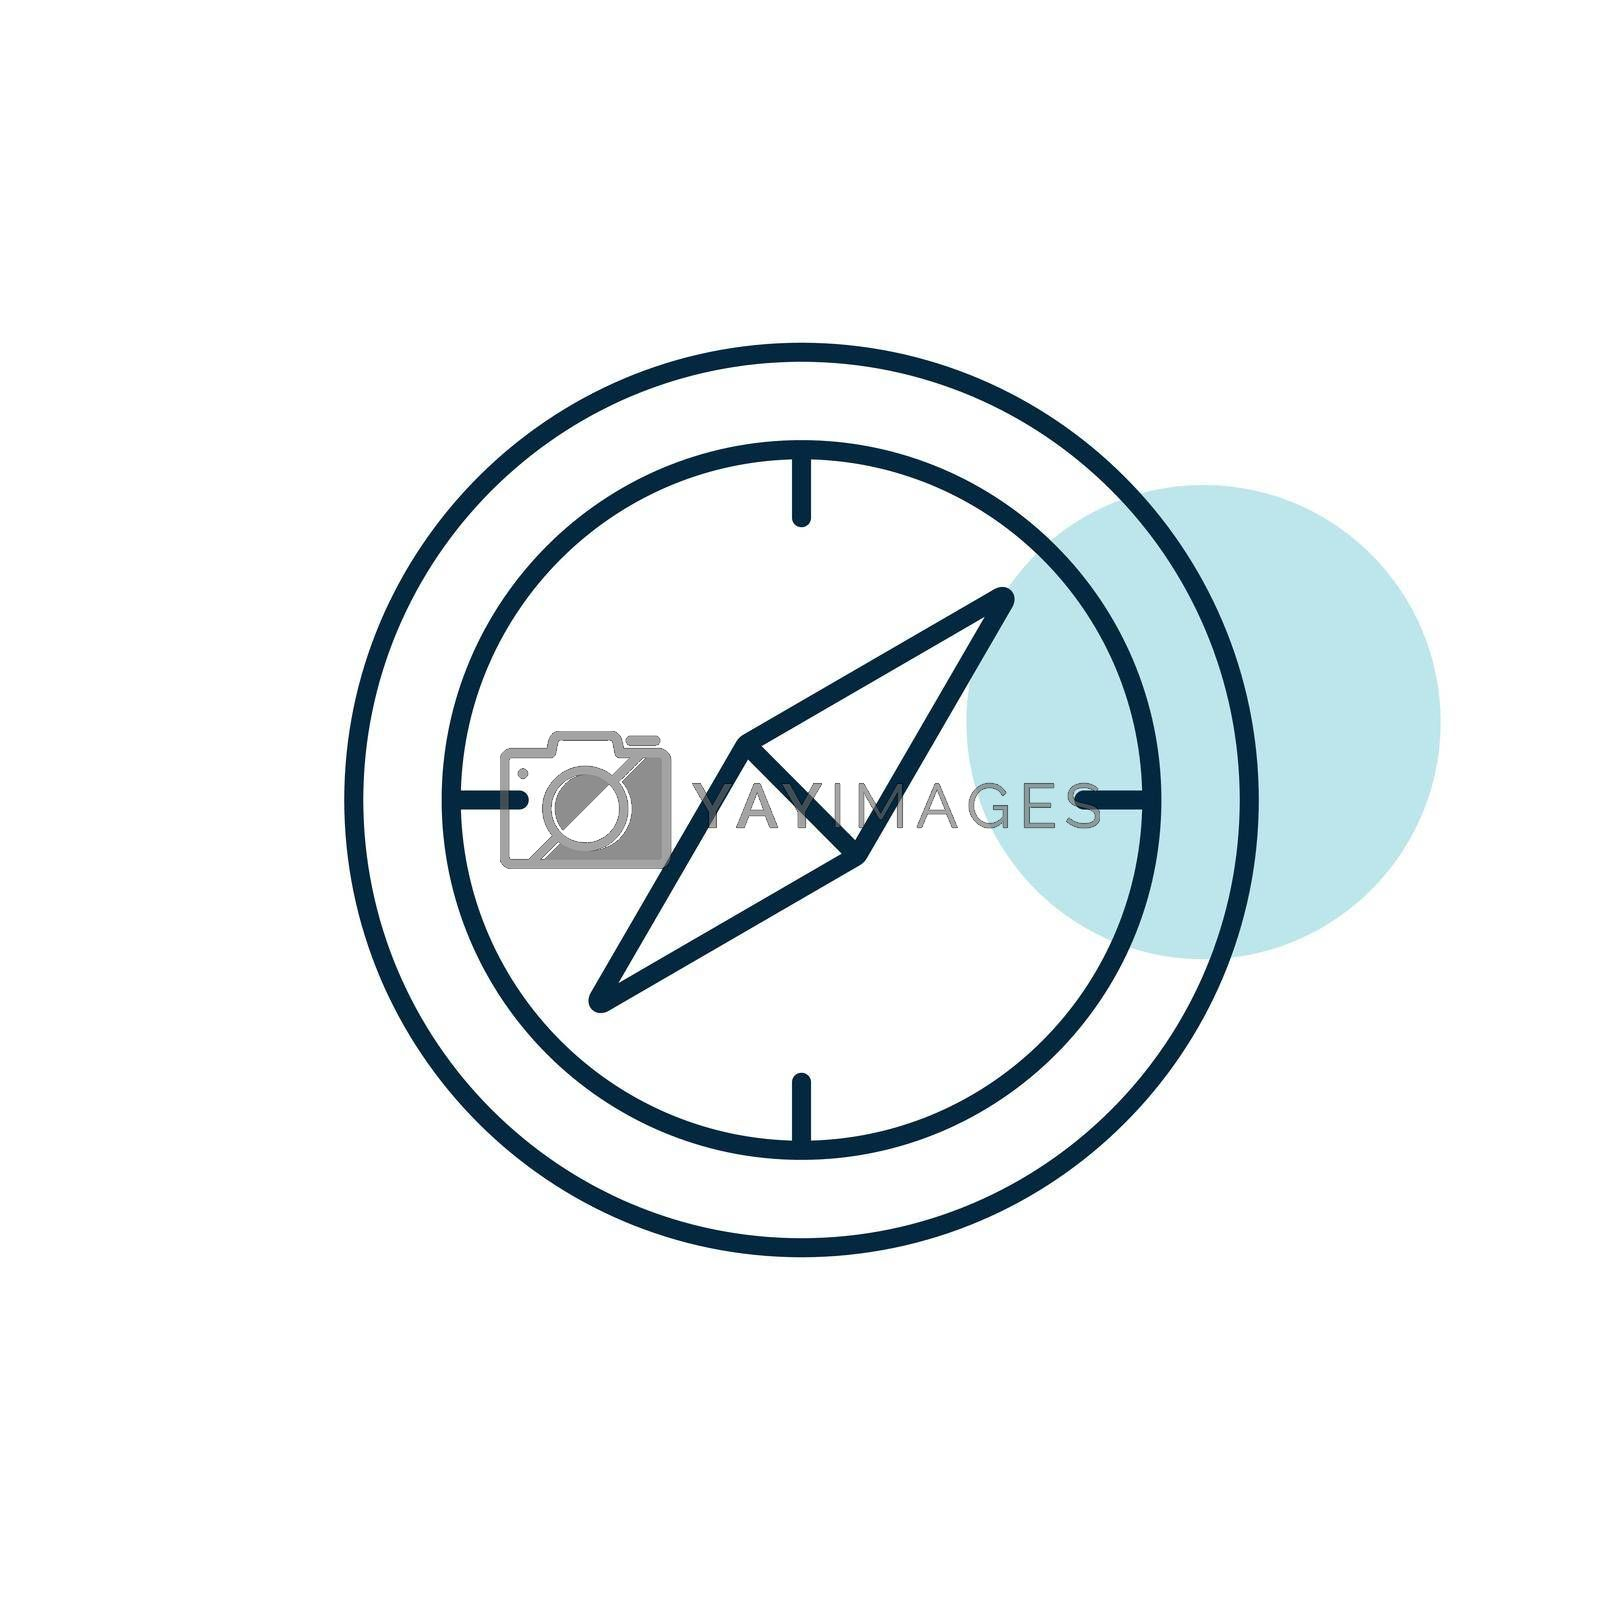 Compas vector icon. Navigation sign. Graph symbol for travel and tourism web site and apps design, logo, app, UI